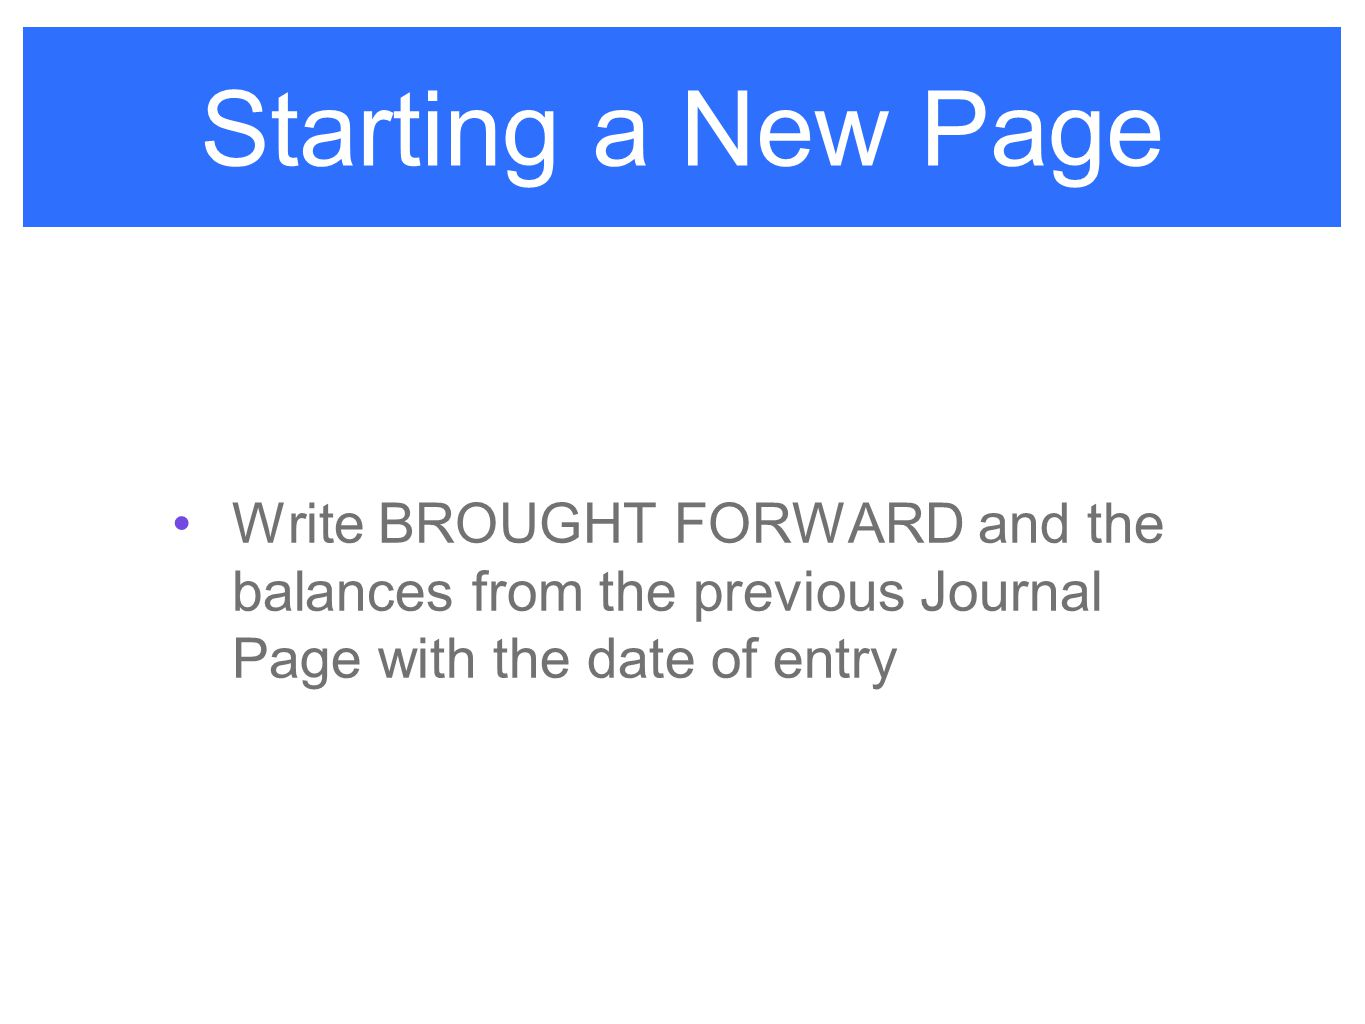 Starting a New Page Write BROUGHT FORWARD and the balances from the previous Journal Page with the date of entry.